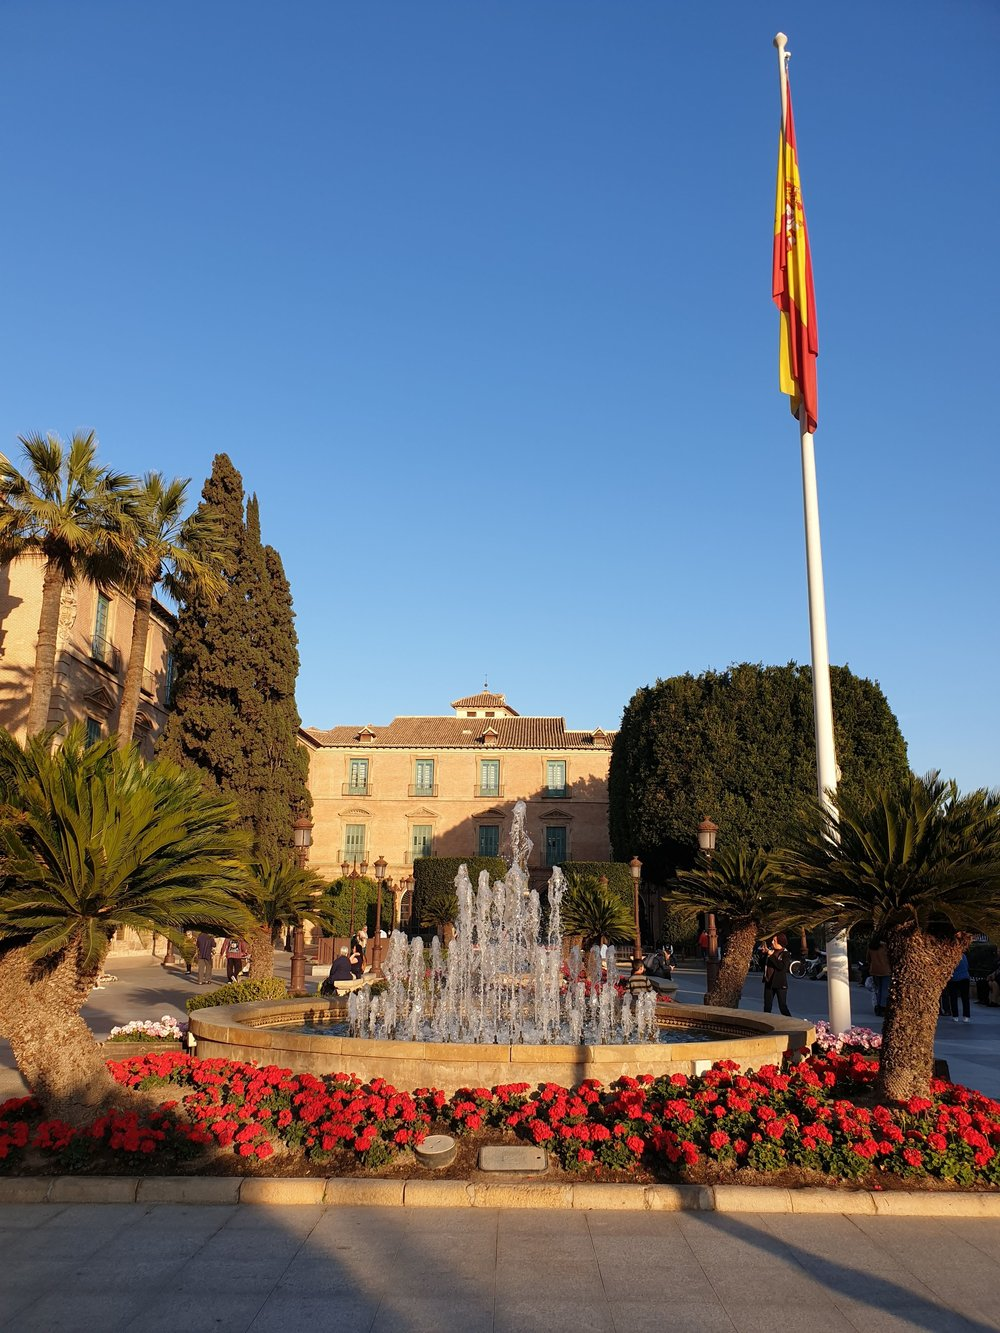 Everything about Murcia is cheerfully red!